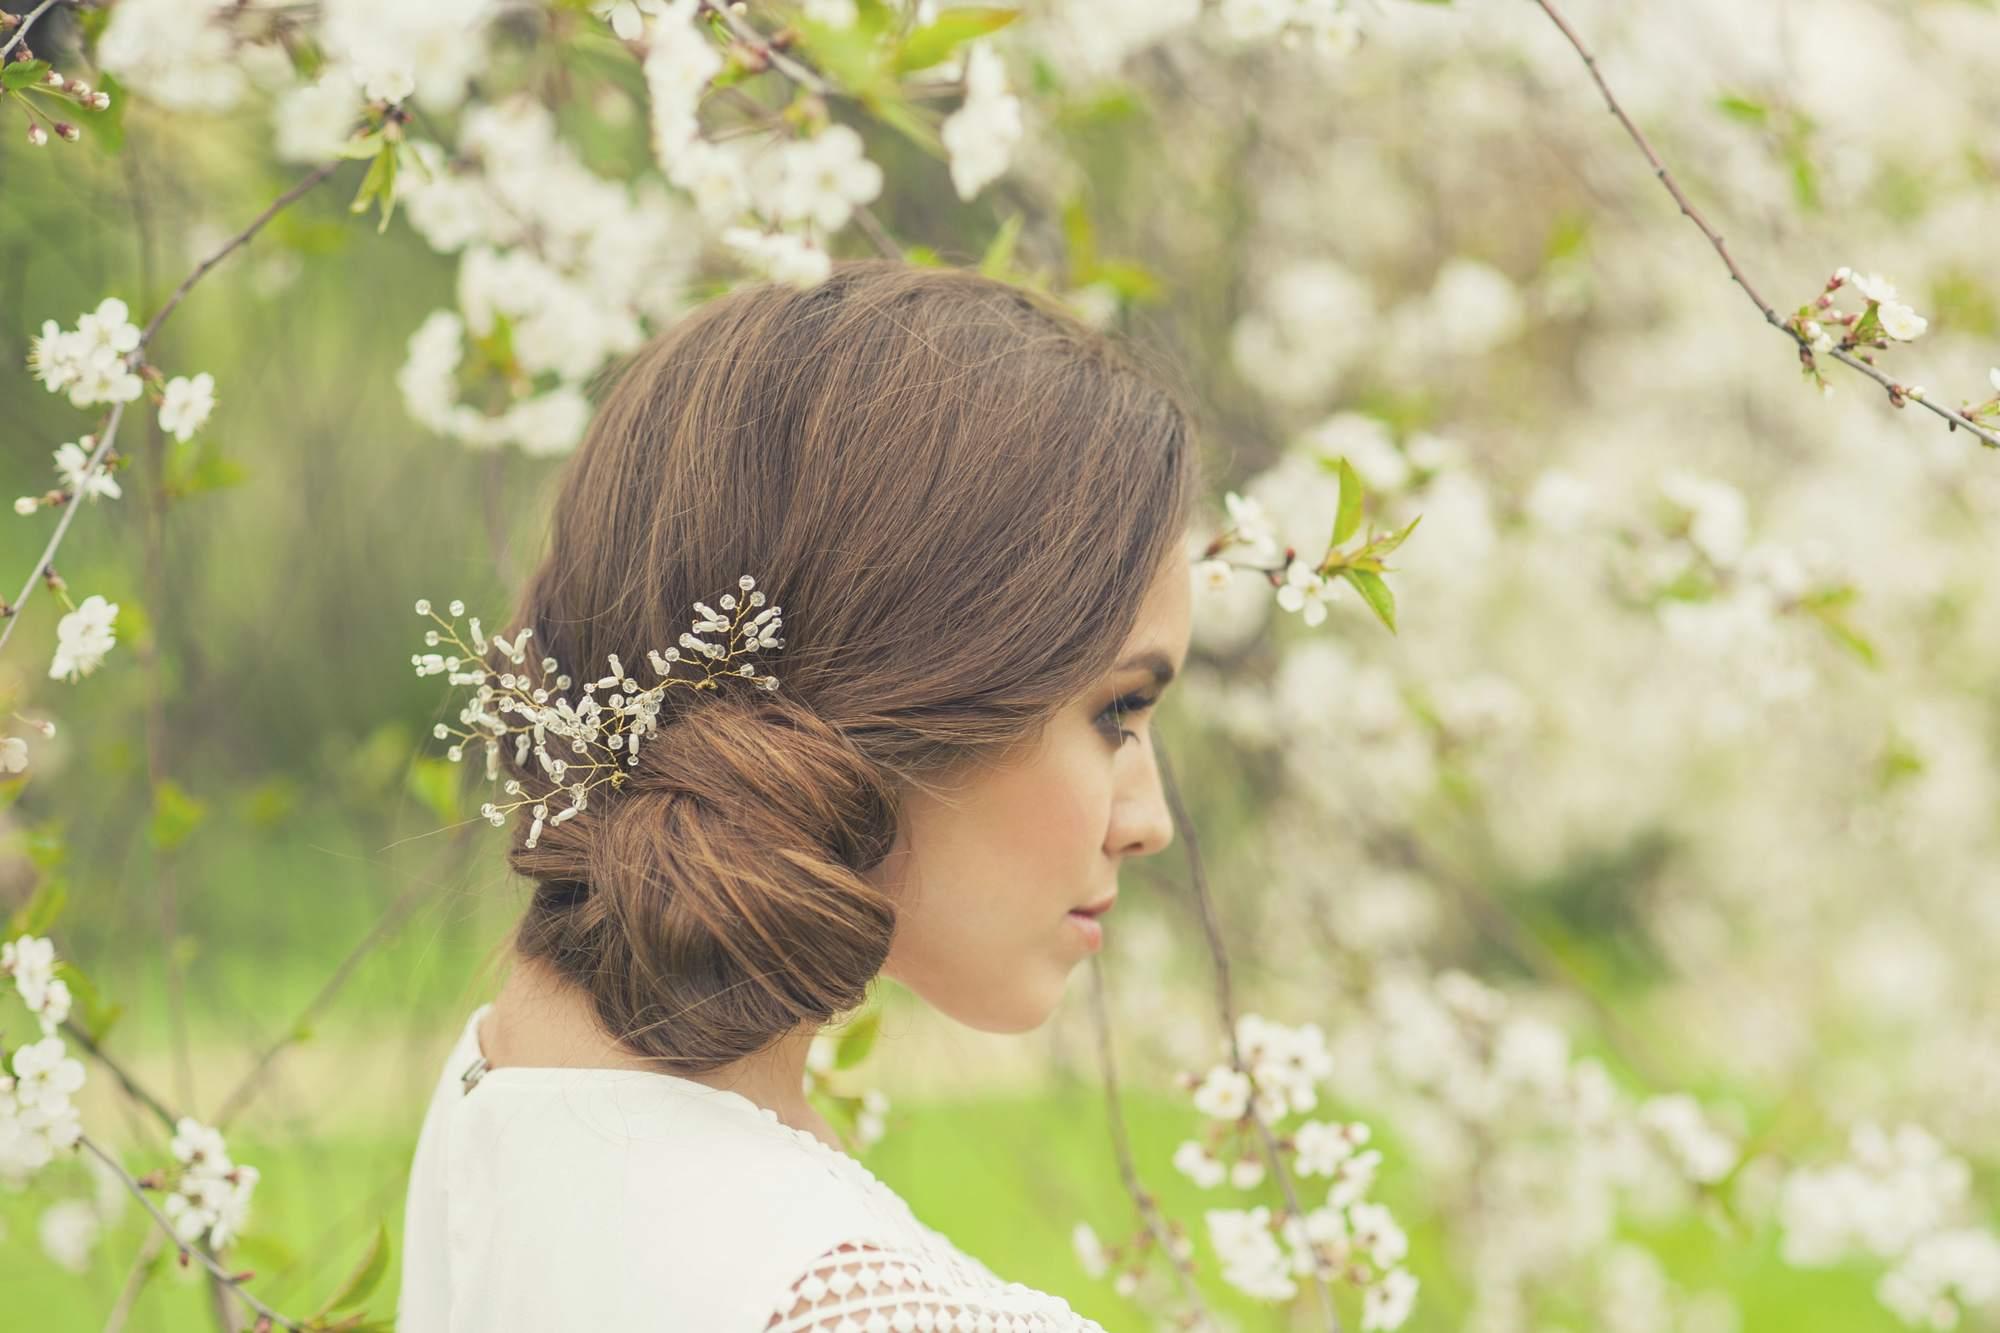 Bridemaids hair ideas include this side bun chignon finished with jewelled hair slide